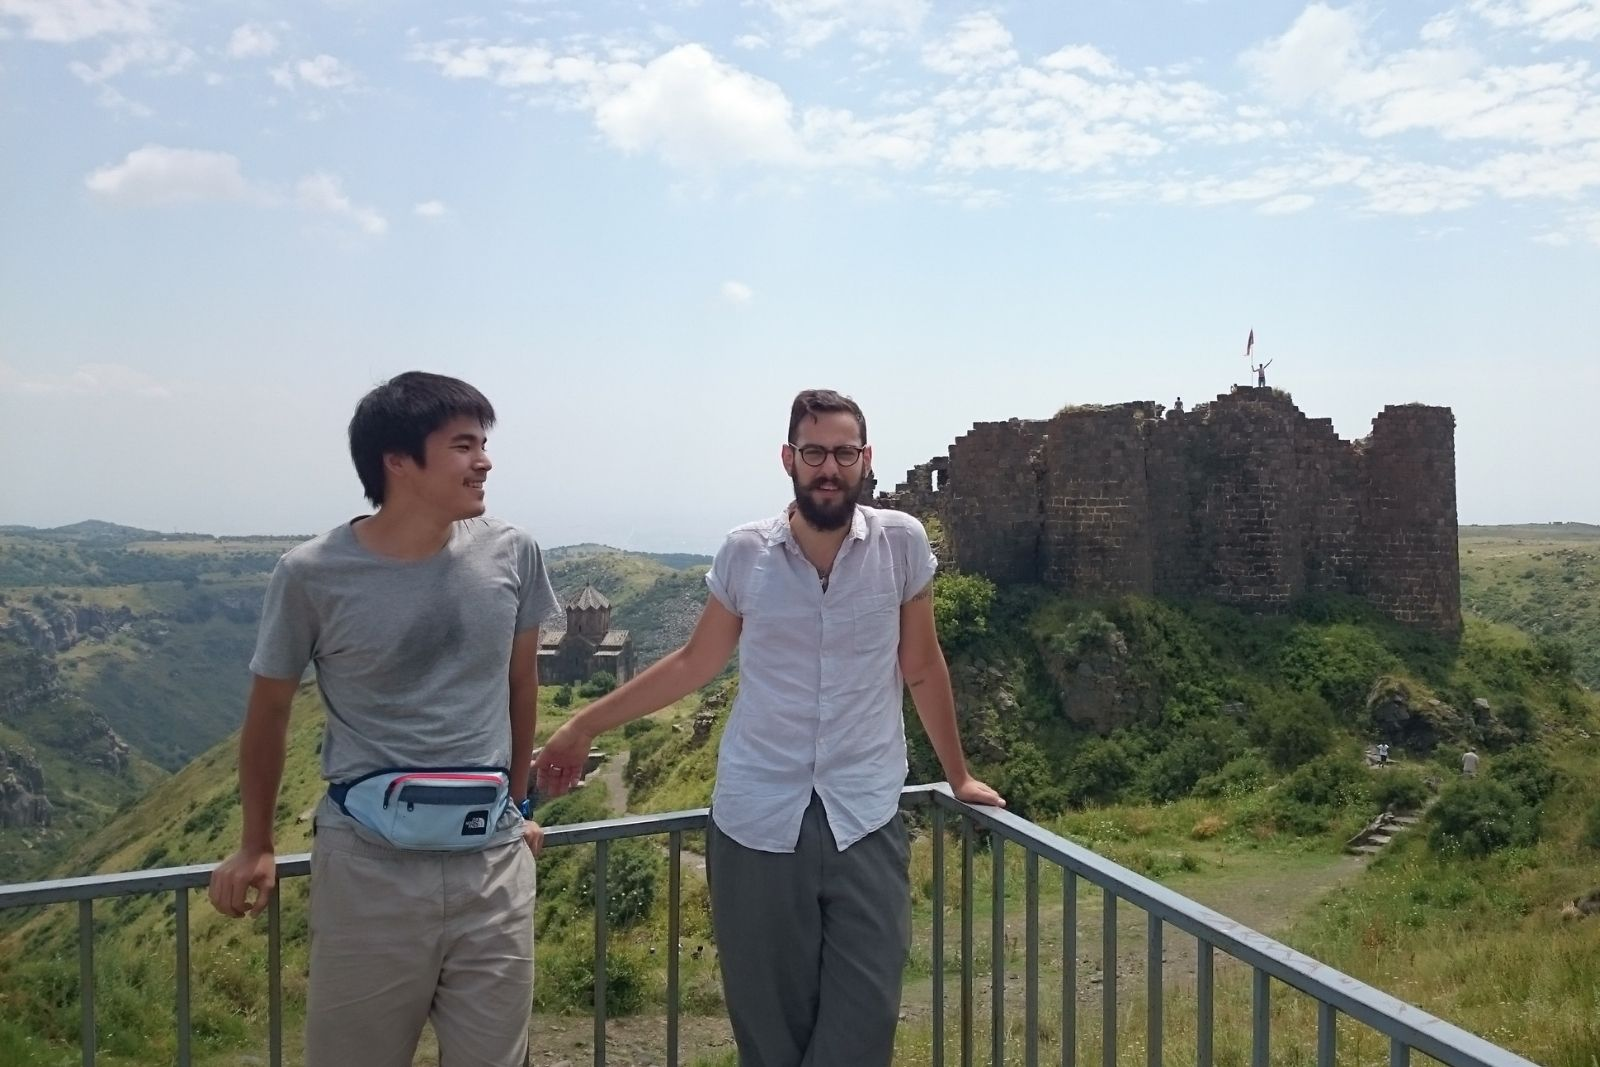 Participants of Armenian language summer school 2016 at Amberd fortress. From left to right: Chihiro Taguchi,	Nicholas Matheou